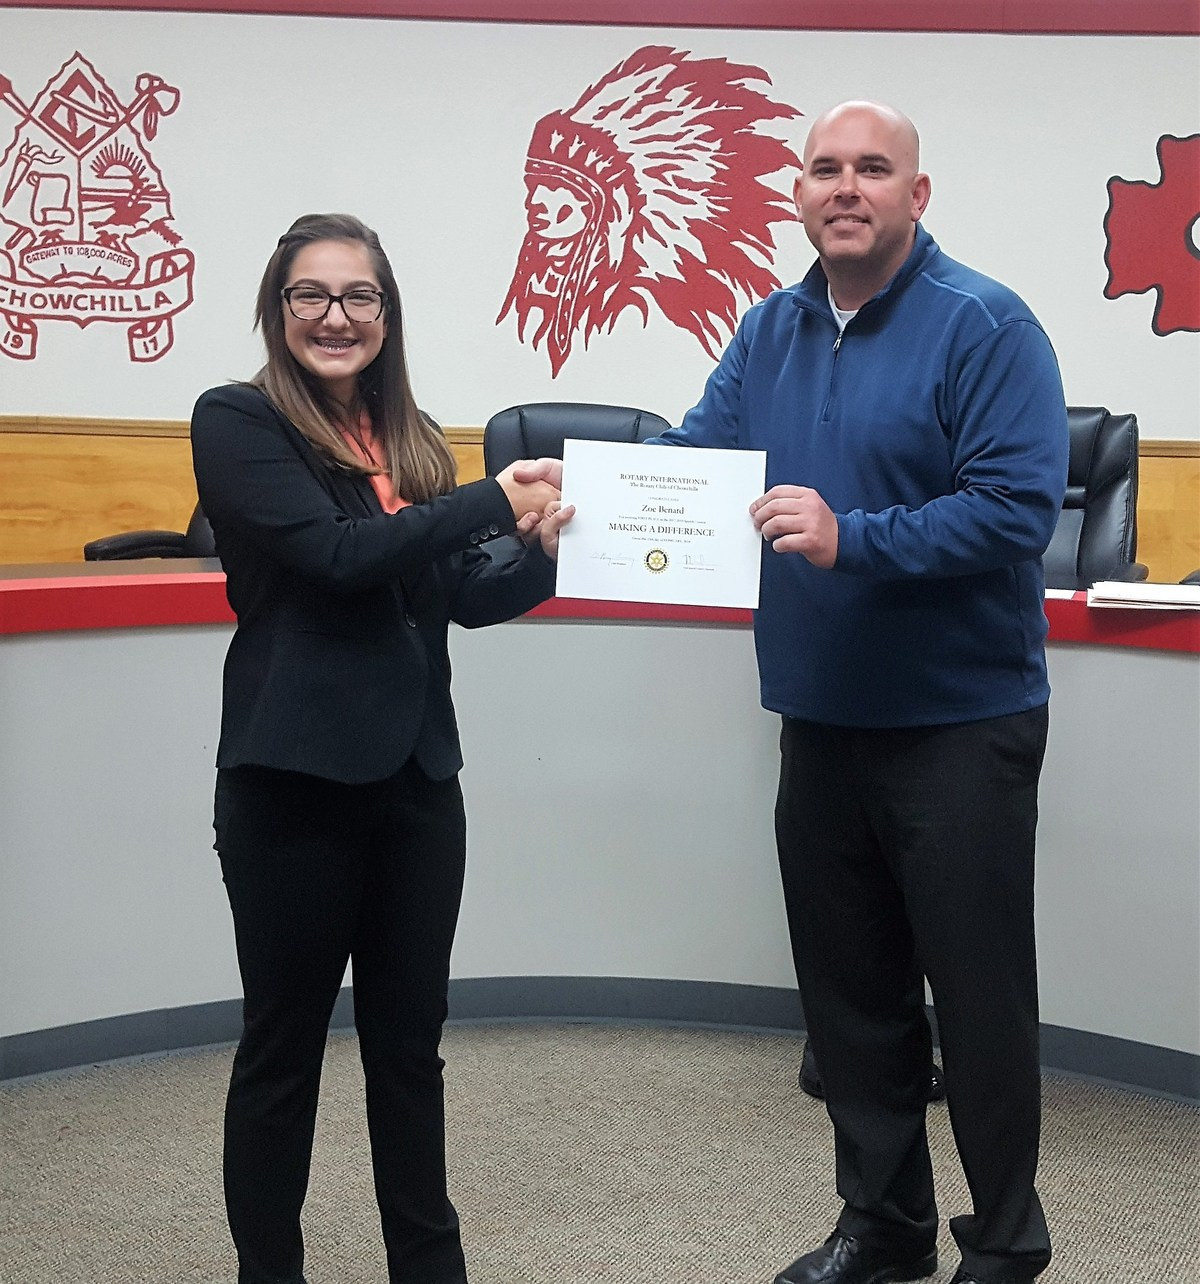 Zoe Benard pictured with Principal Justin Miller receiving award for winning Rotary Speech Contest